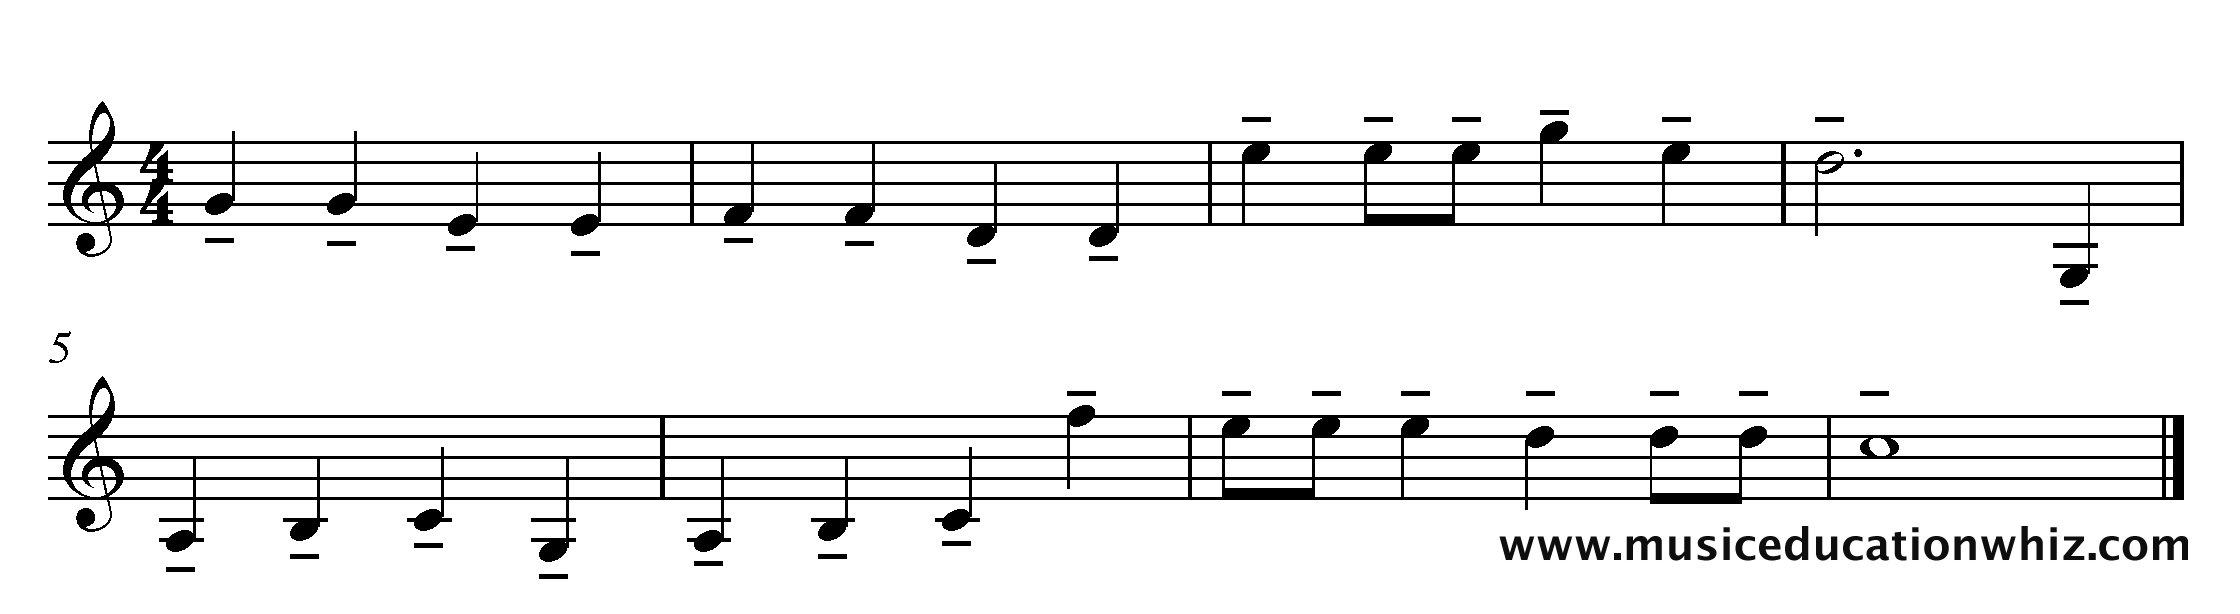 The music for 'Mary Mary Quite Contrary' with tenuto markings.